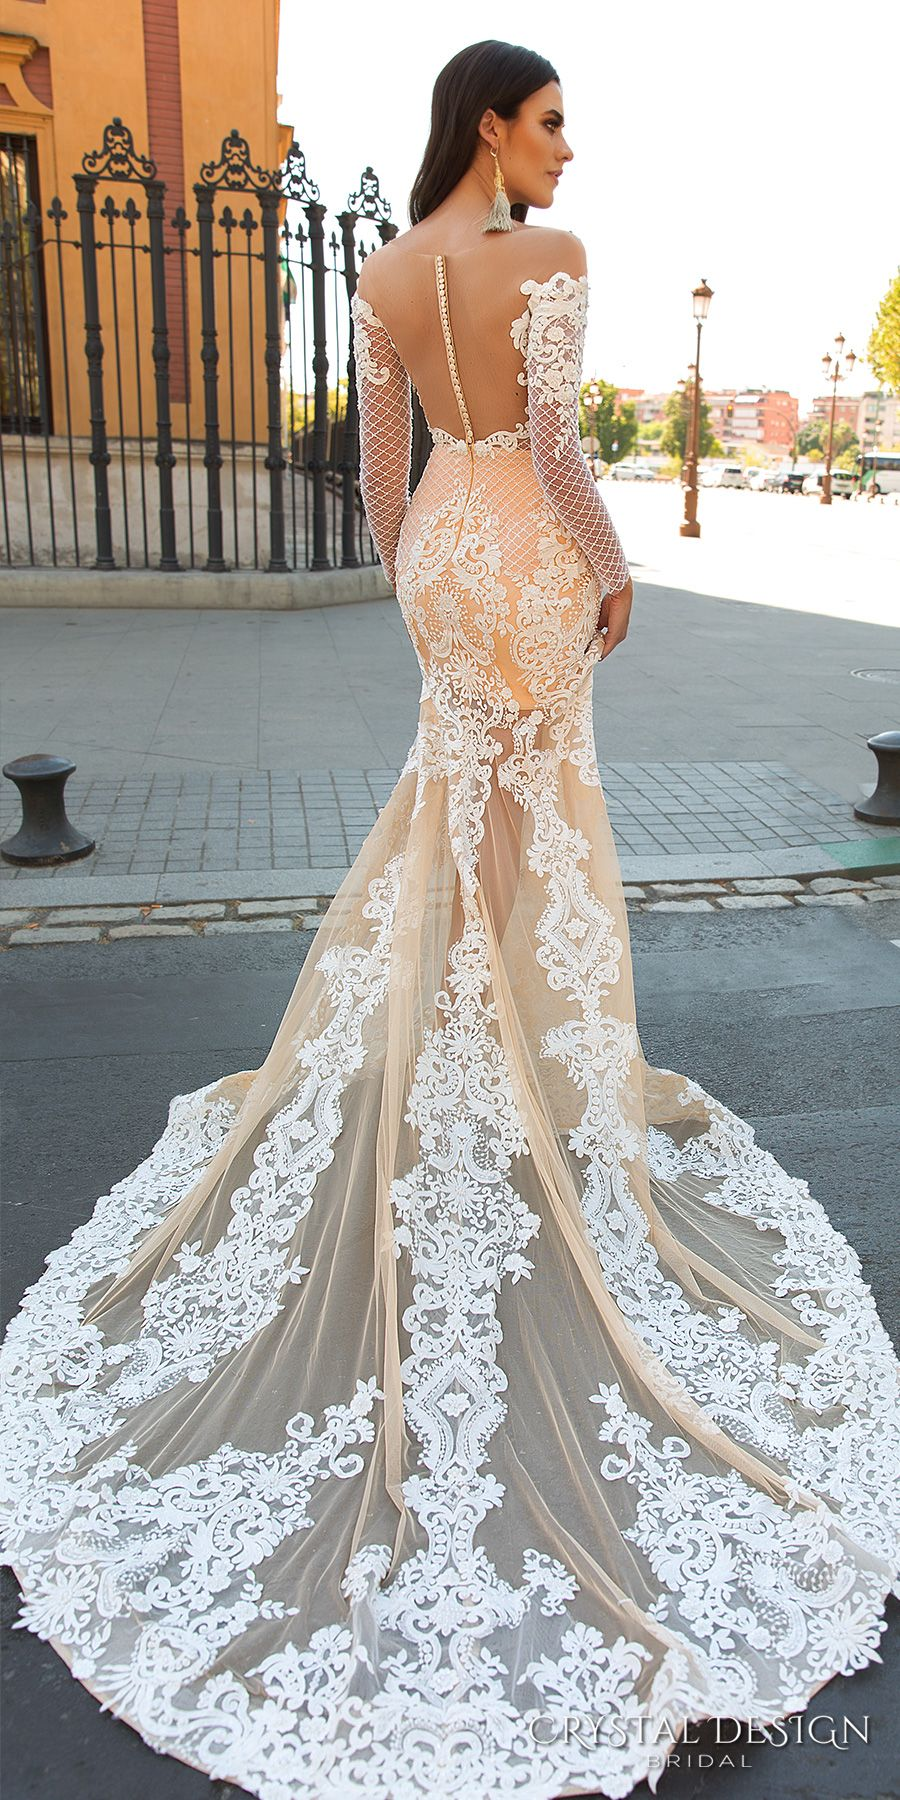 Beautiful wedding dresses from the 2017 crystal design for Top wedding dress designers 2017